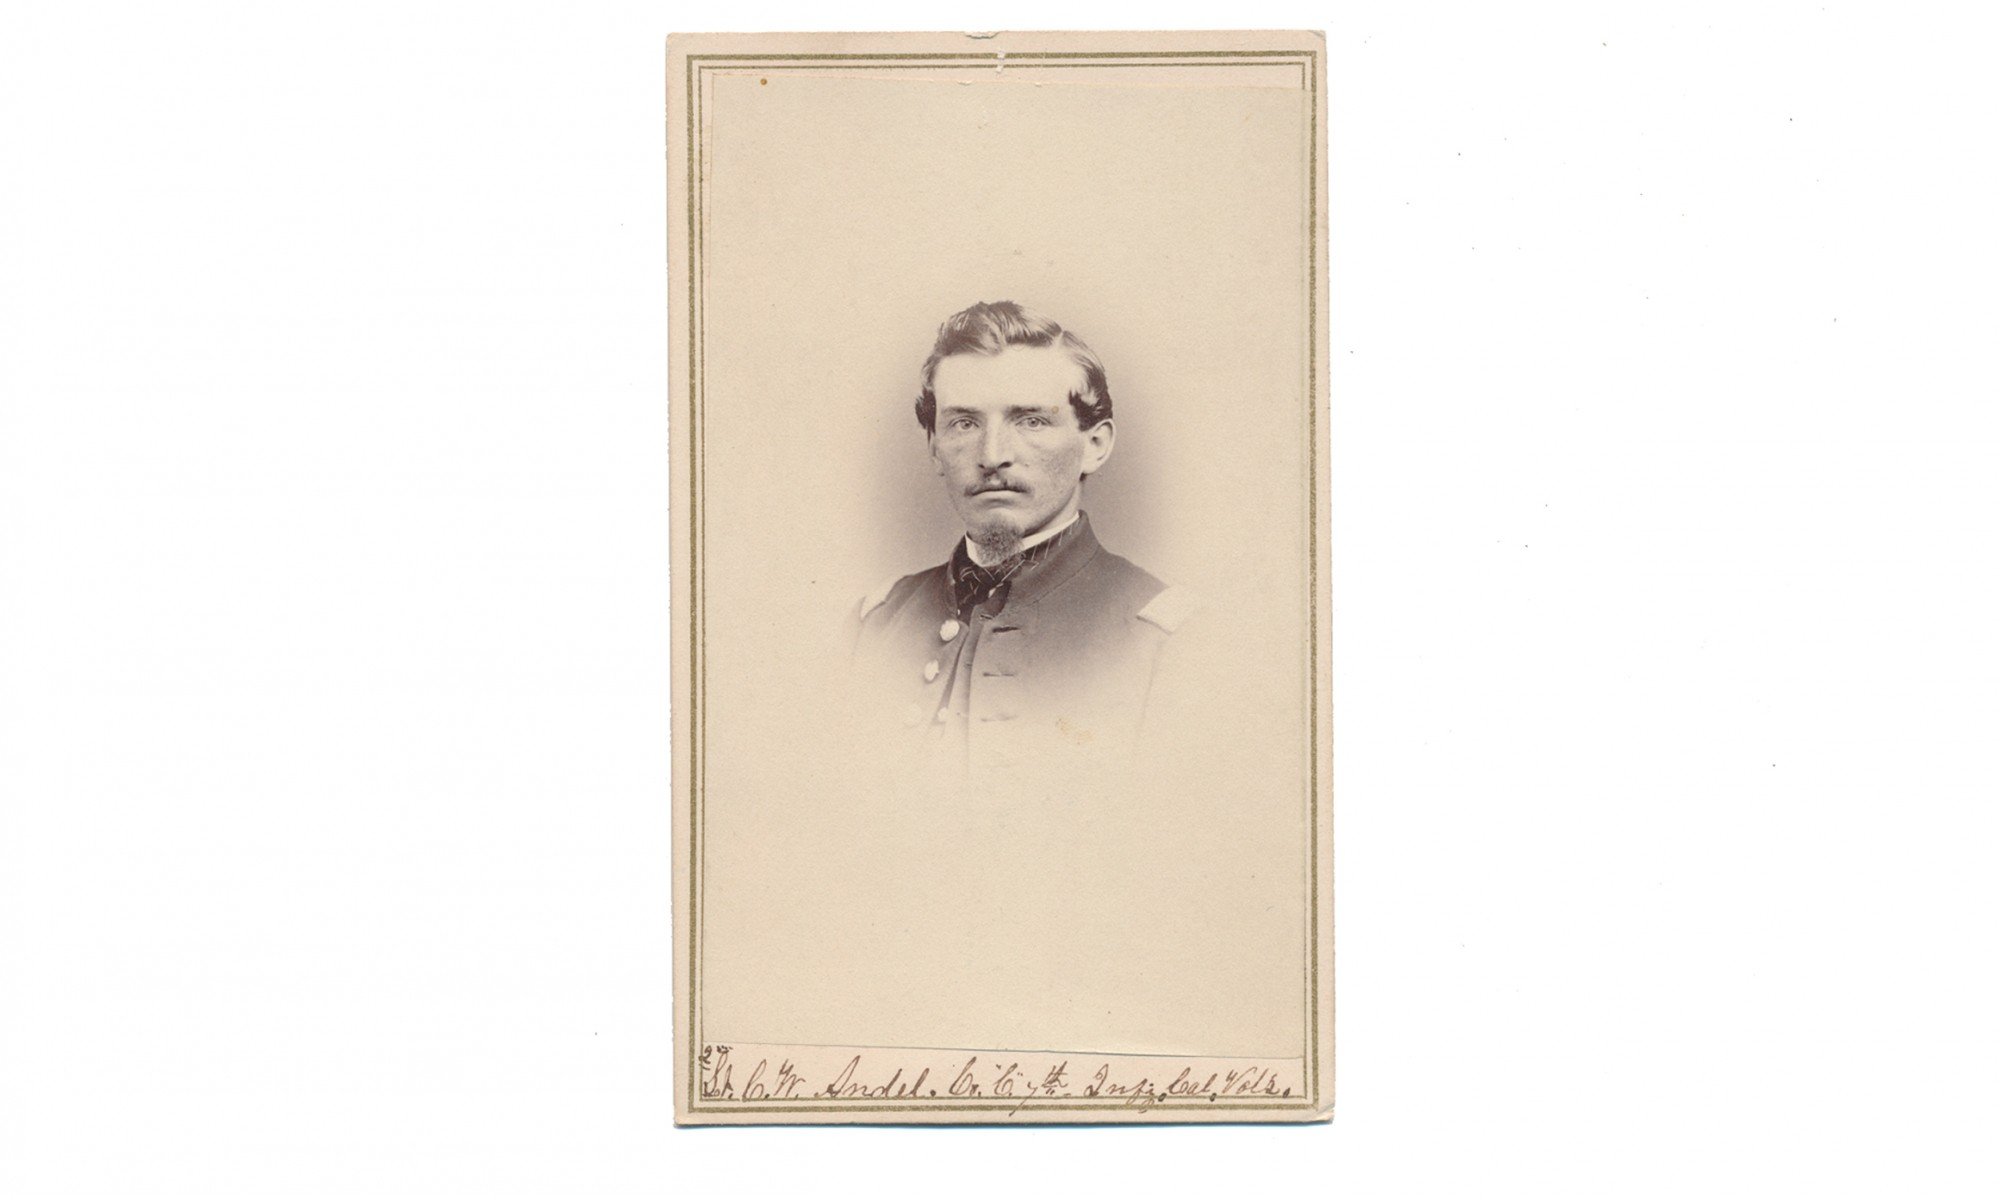 CDV OF CHARLES W. ANDEL, 7th CALIFORNIA INFANTRY